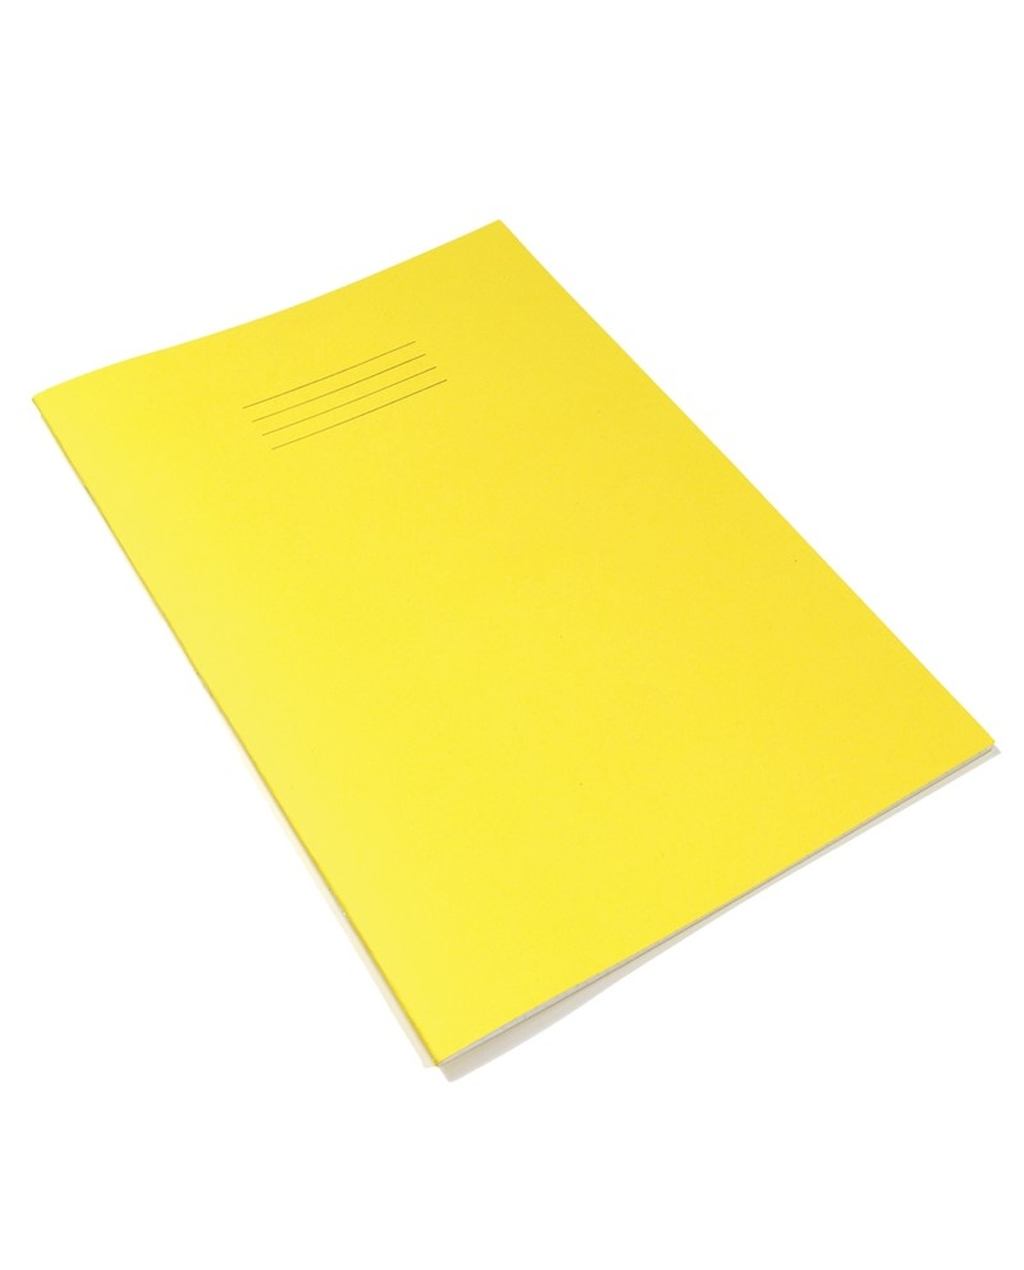 A4 Tinted Ex Books 8mm Ruled & Margin Cream Paper, Yellow Cover